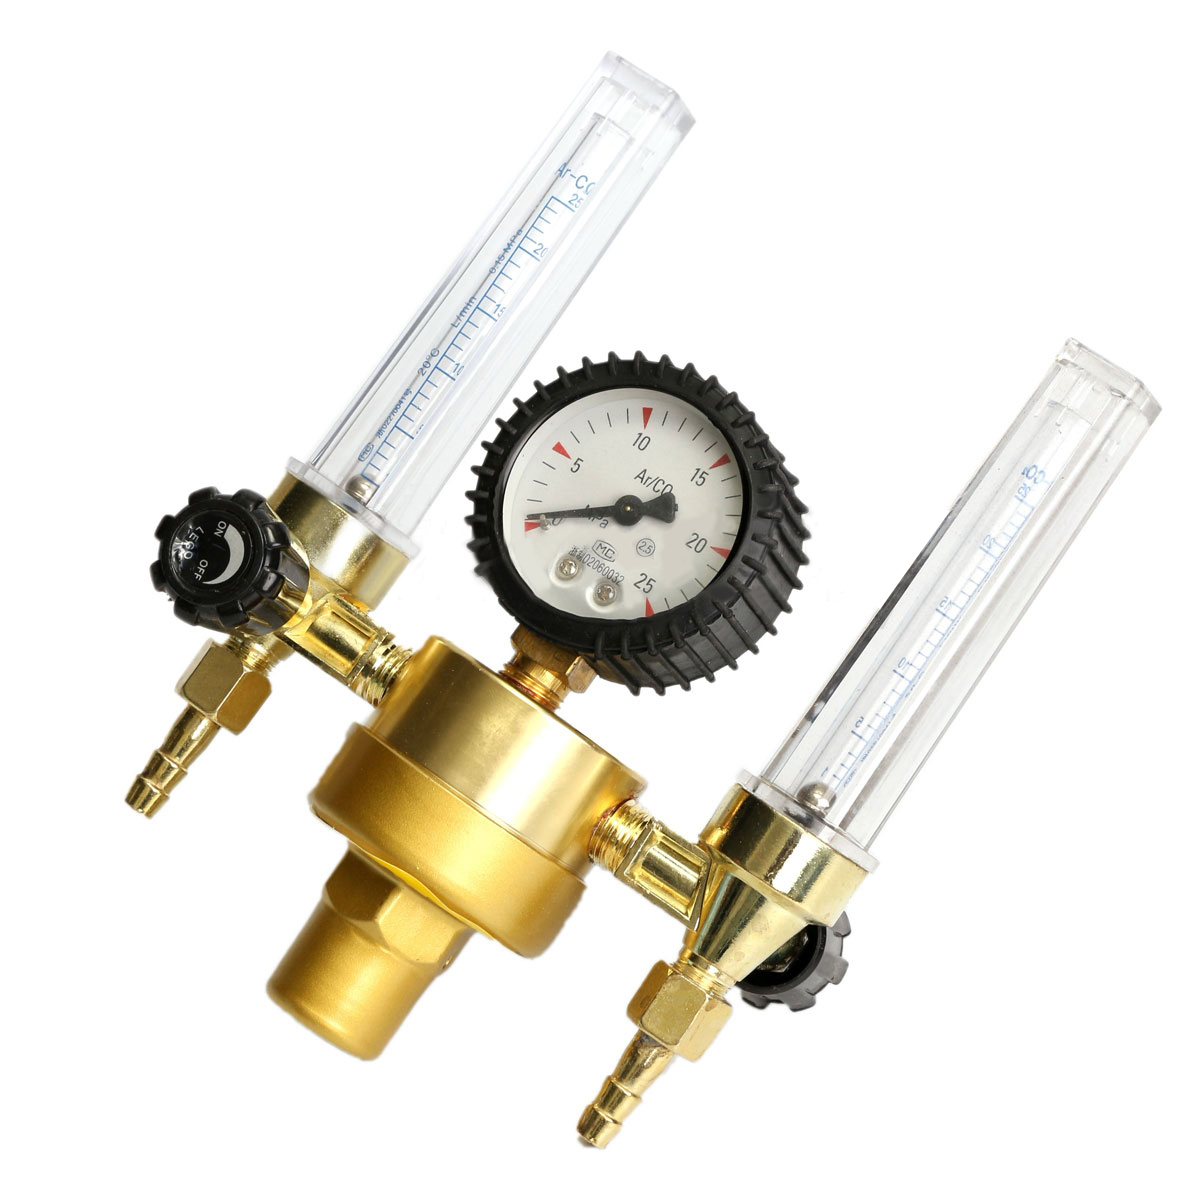 New Arrival Mayitr Brass Argon Regulator CO2 Mig Tig Flow Meter Weld Machine Double Backpurge Welder Argon Flowmeter For Welding венто argon 2